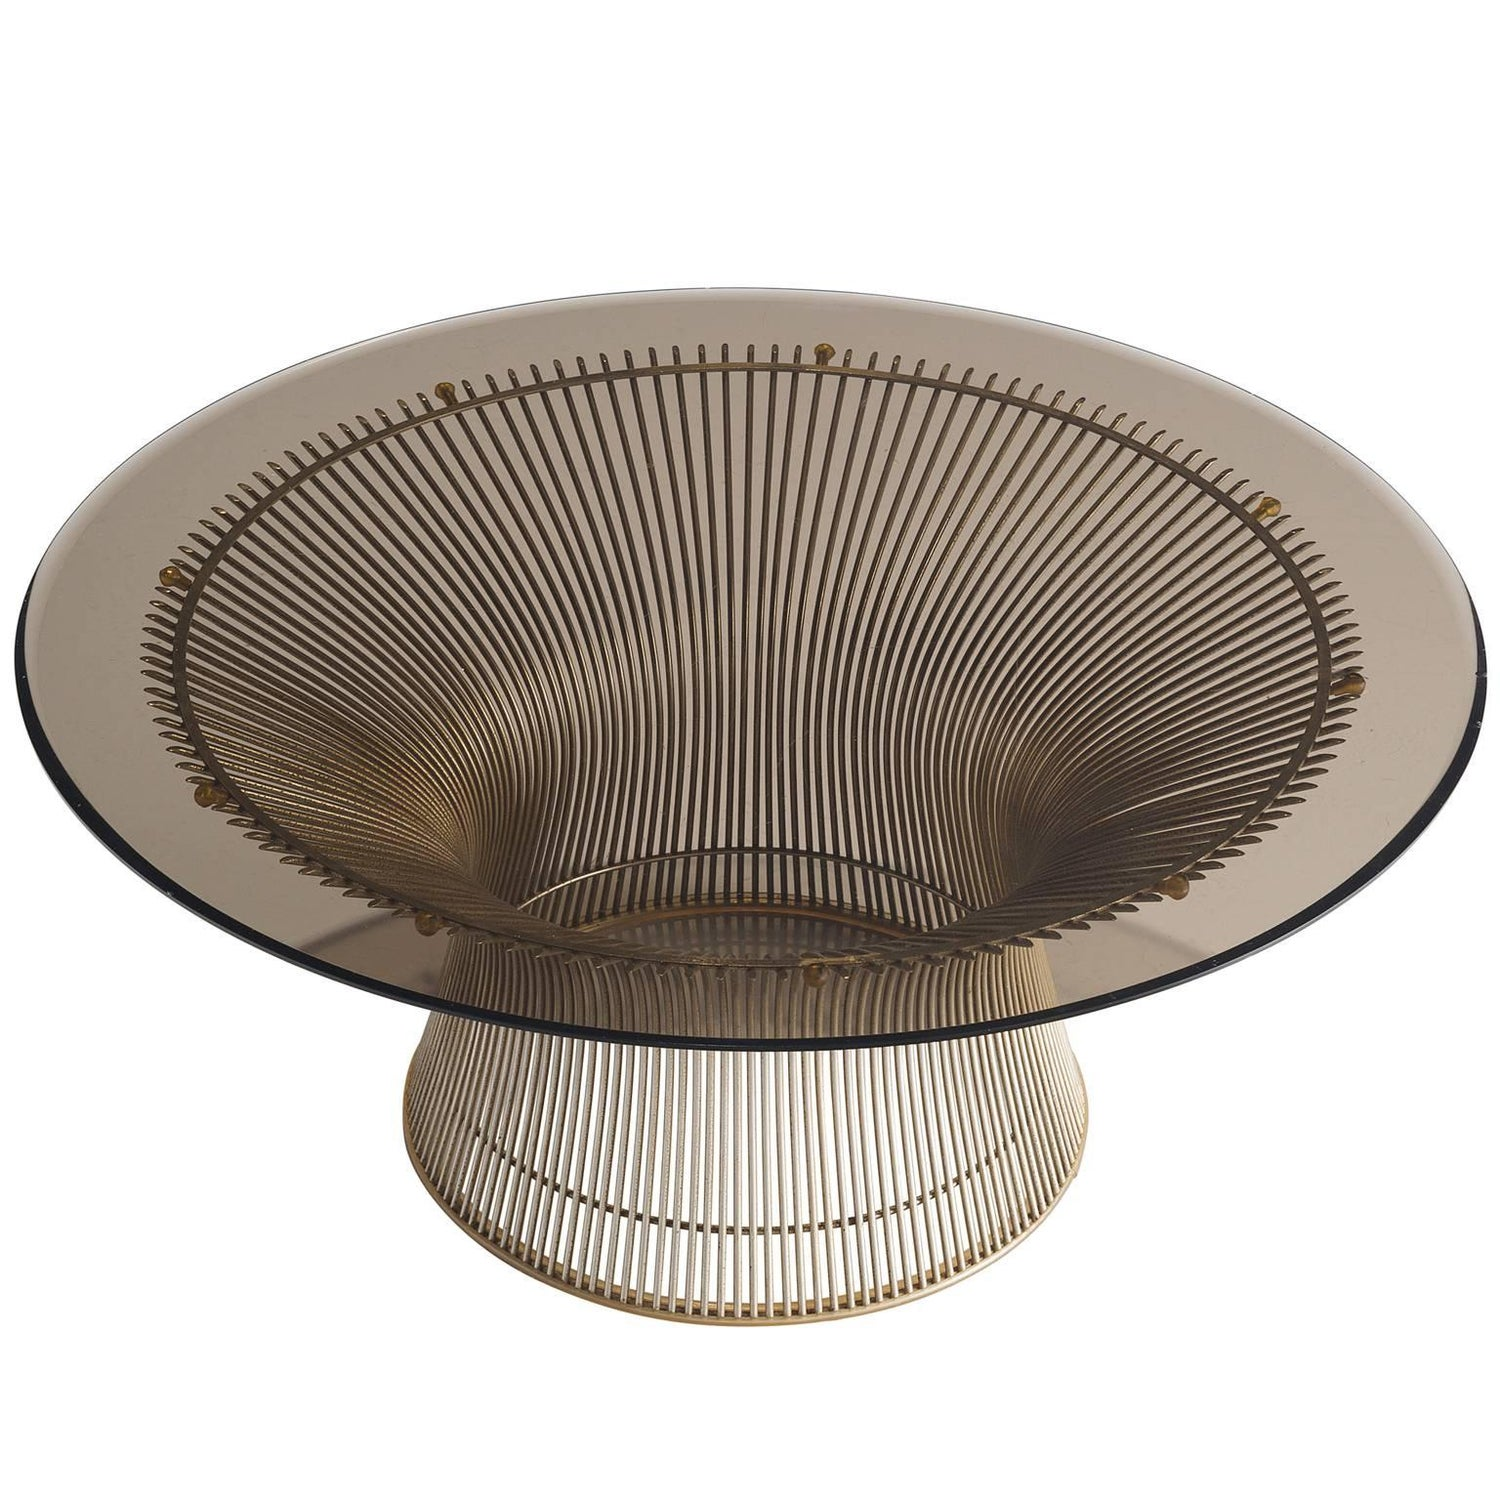 Warren Platner Tables 57 For Sale at 1stdibs